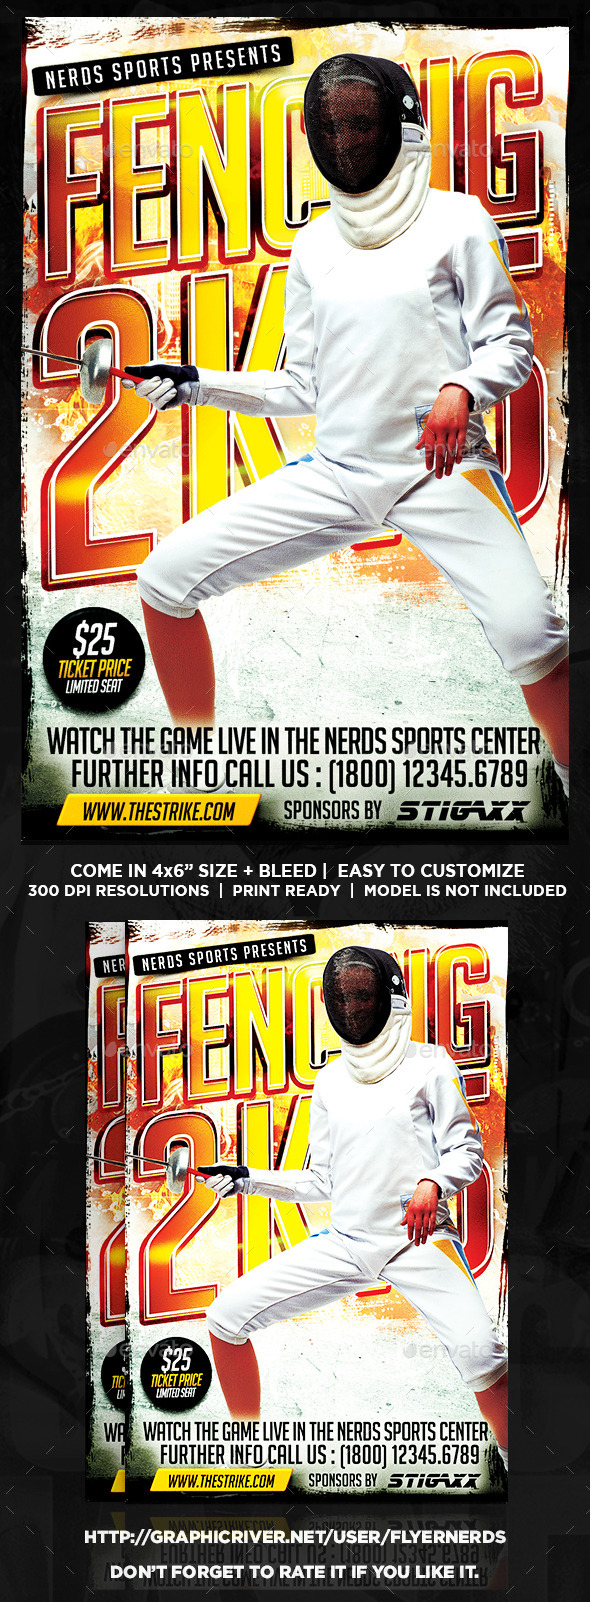 Fencing Championships 2K15 Sports Flyer - Sports Events